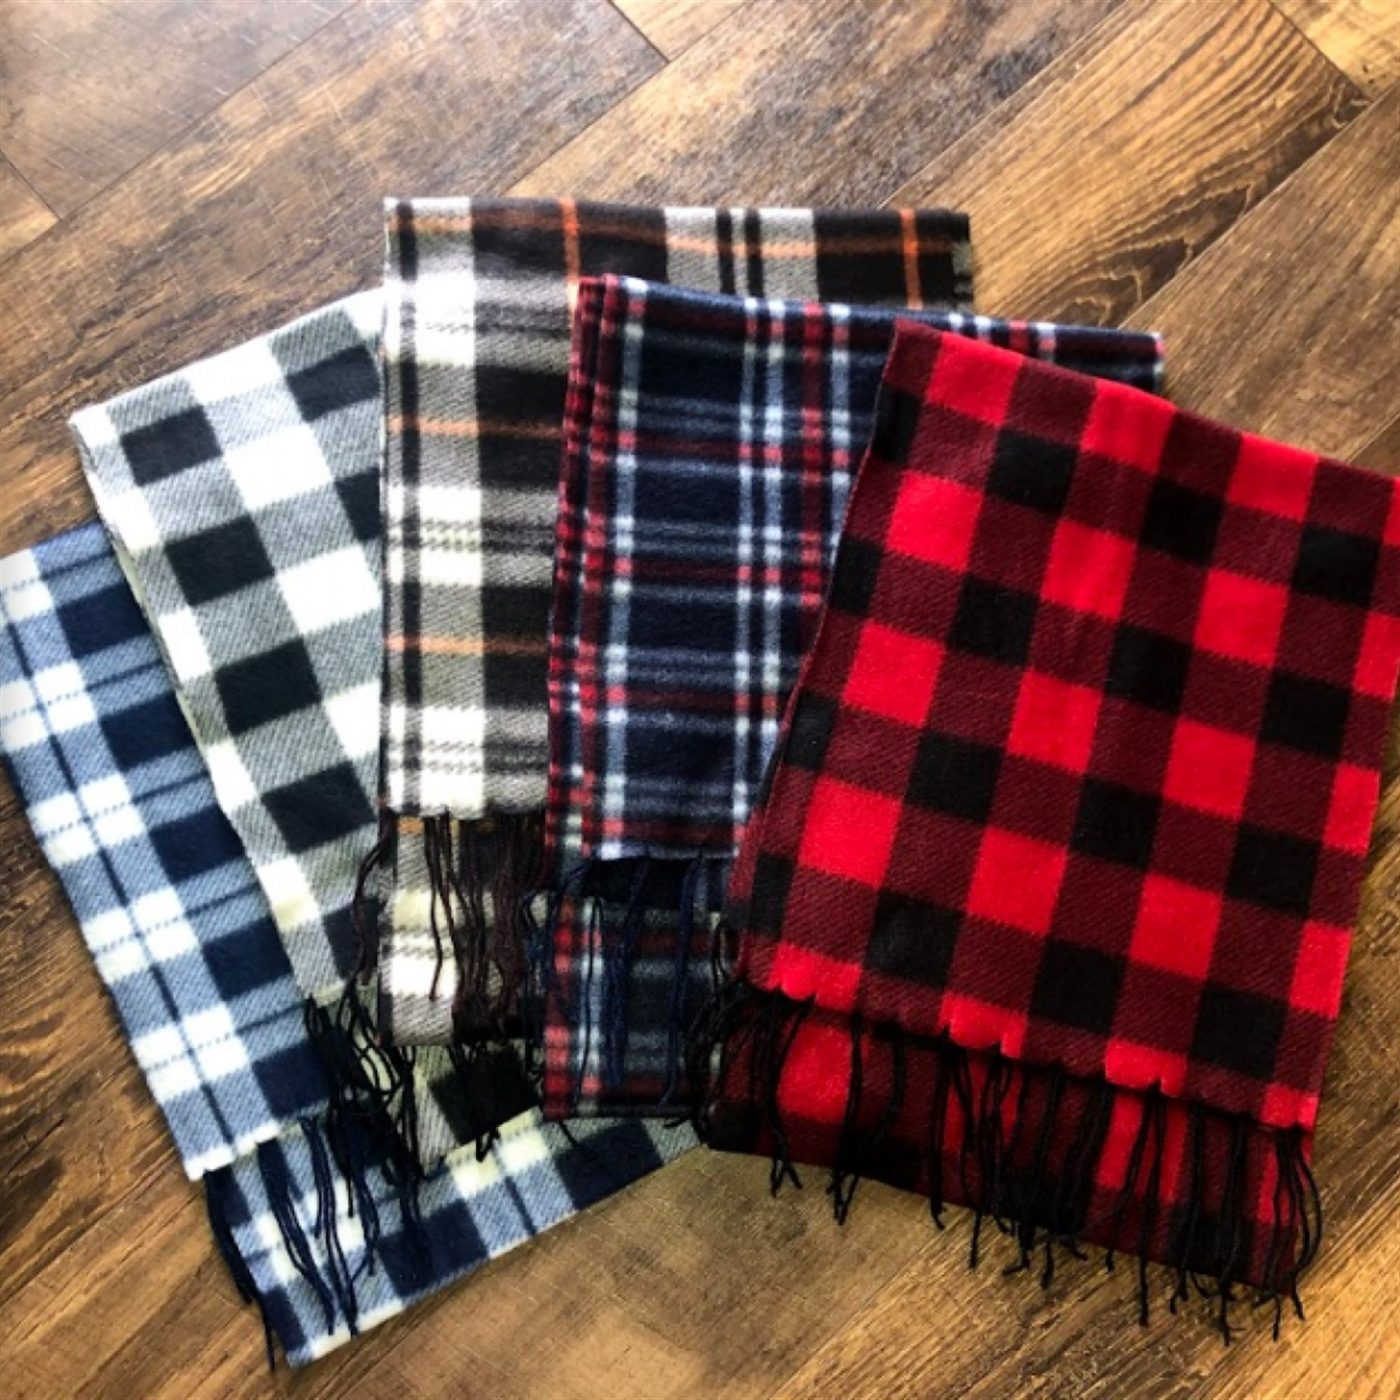 Was $19.99 - Now $9.99 - Fleece Winter Scarfs | Free Shipping (10/16 to 10/18)